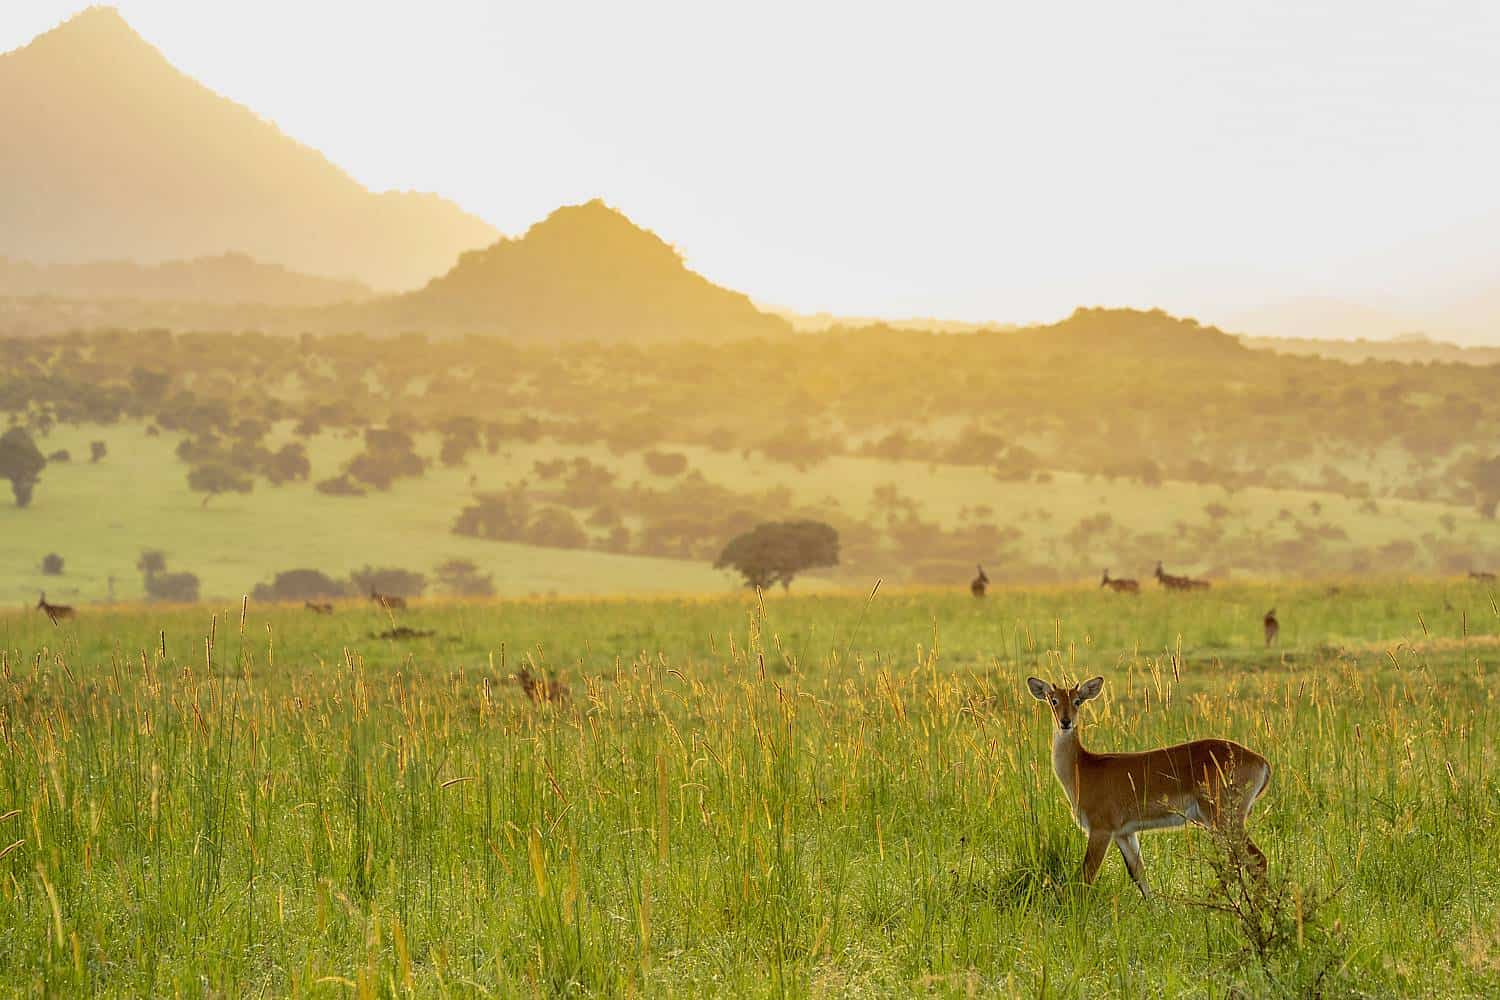 Exploring Kidepo Valley's Scenic Ecology